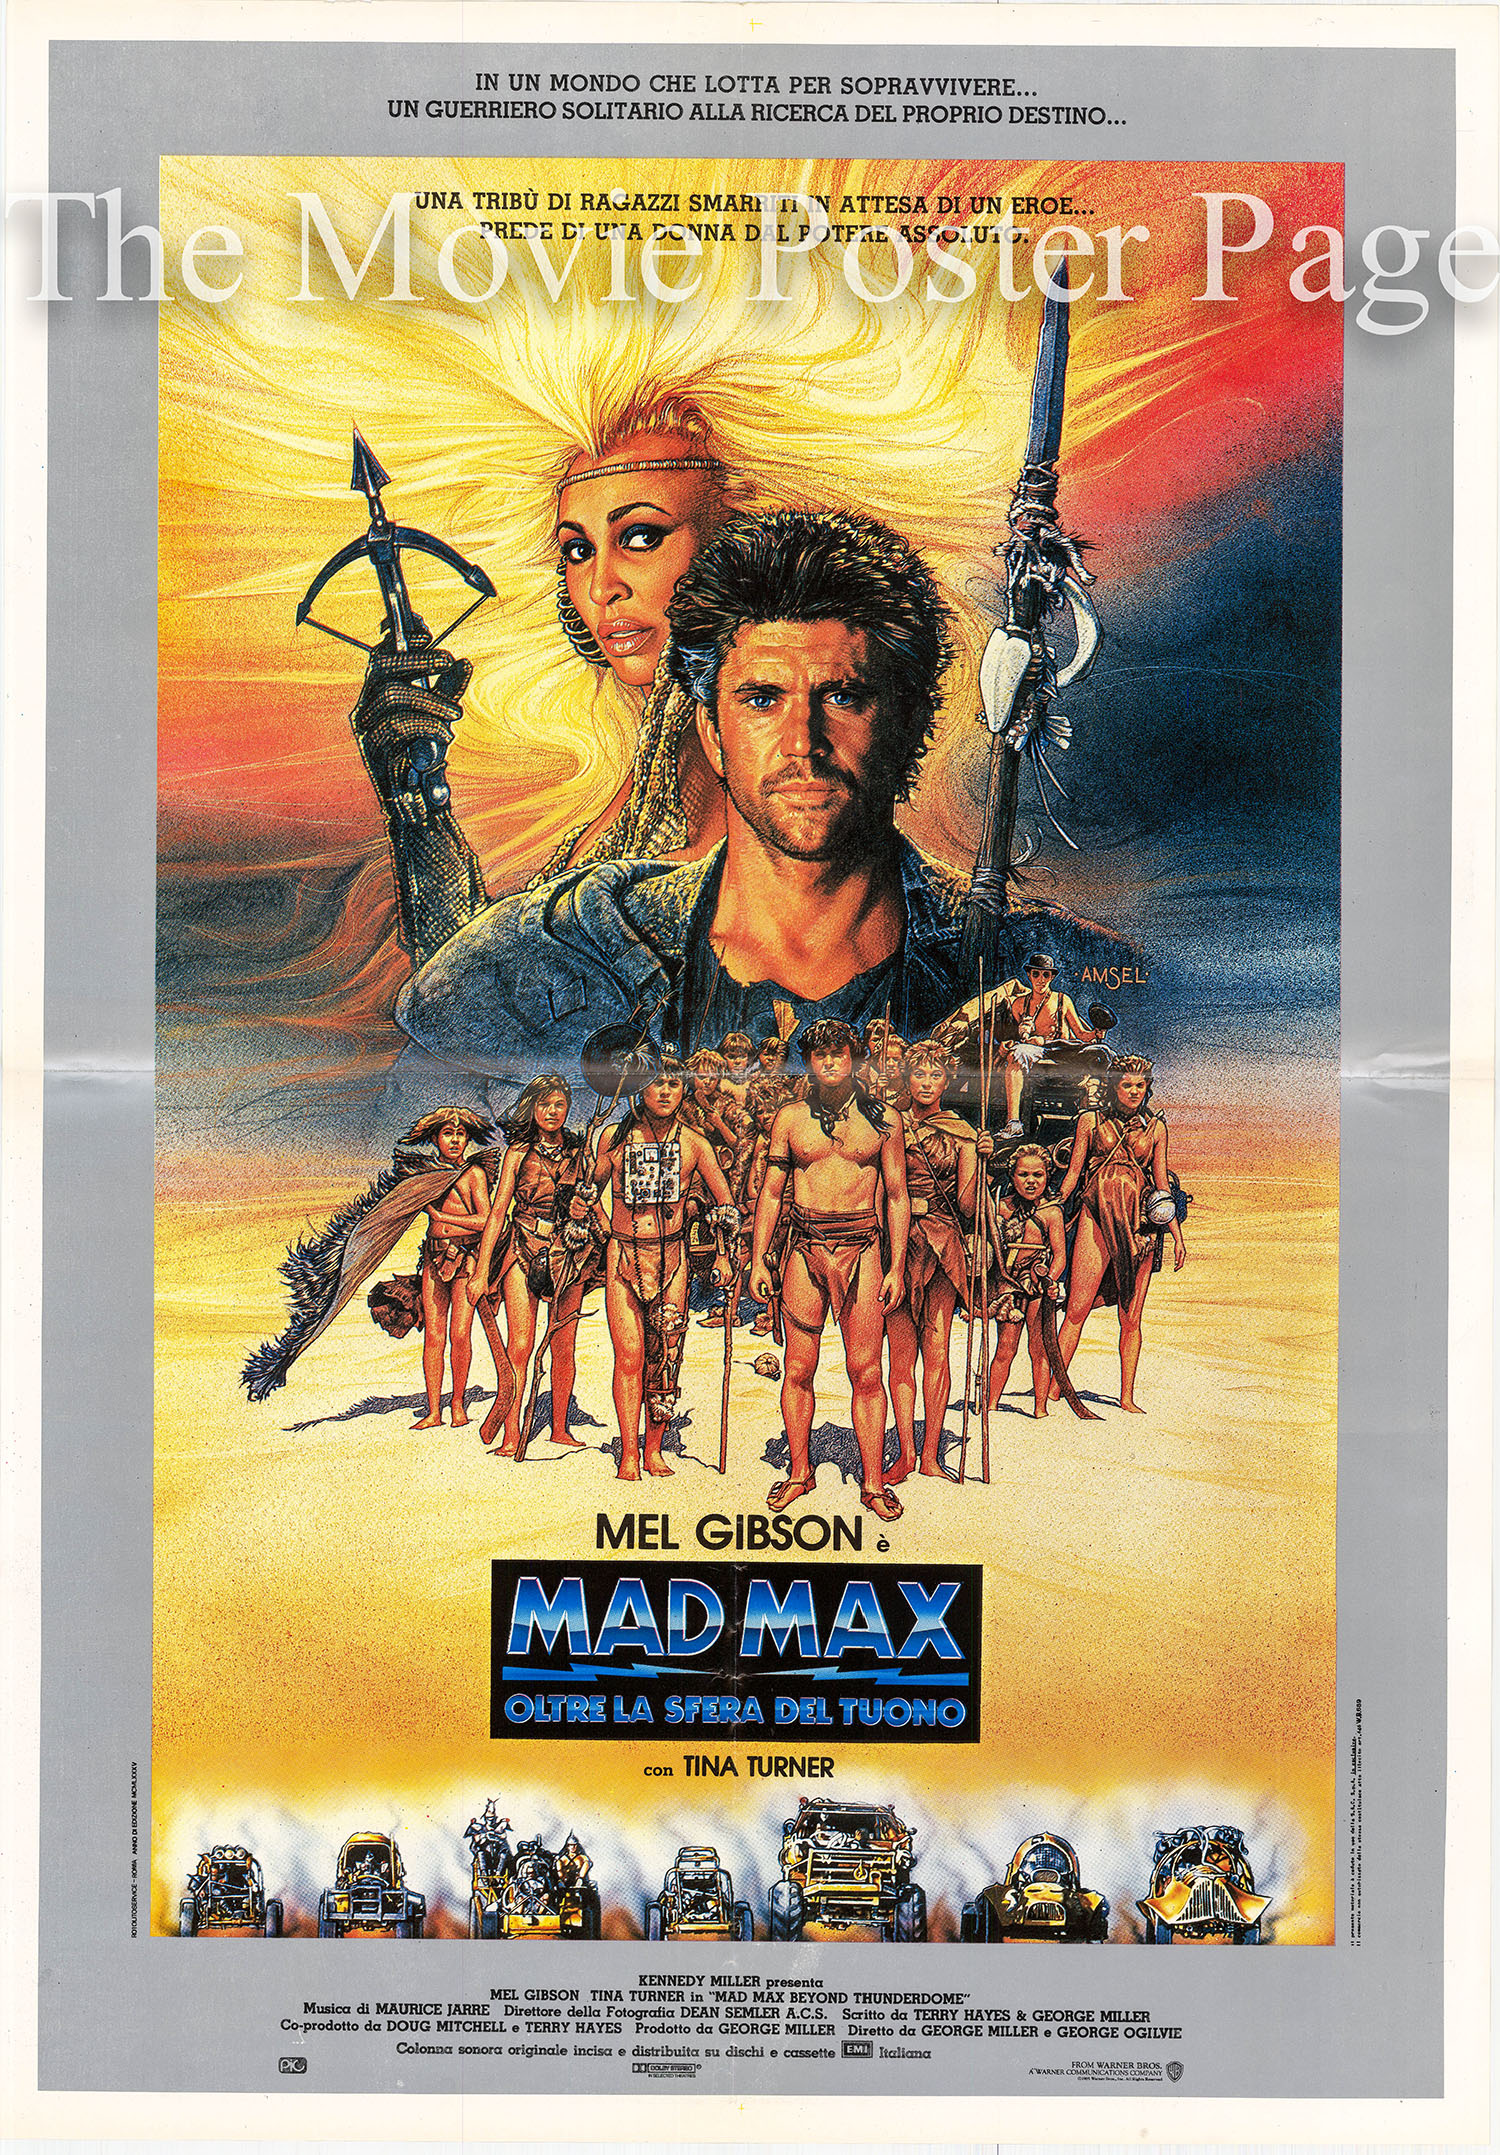 Pictured is an Italian one-sheet poster for the 1986 George Miller and George Ogilvie film Mad Max Beyond Thunderdome starring Mel Gibson.